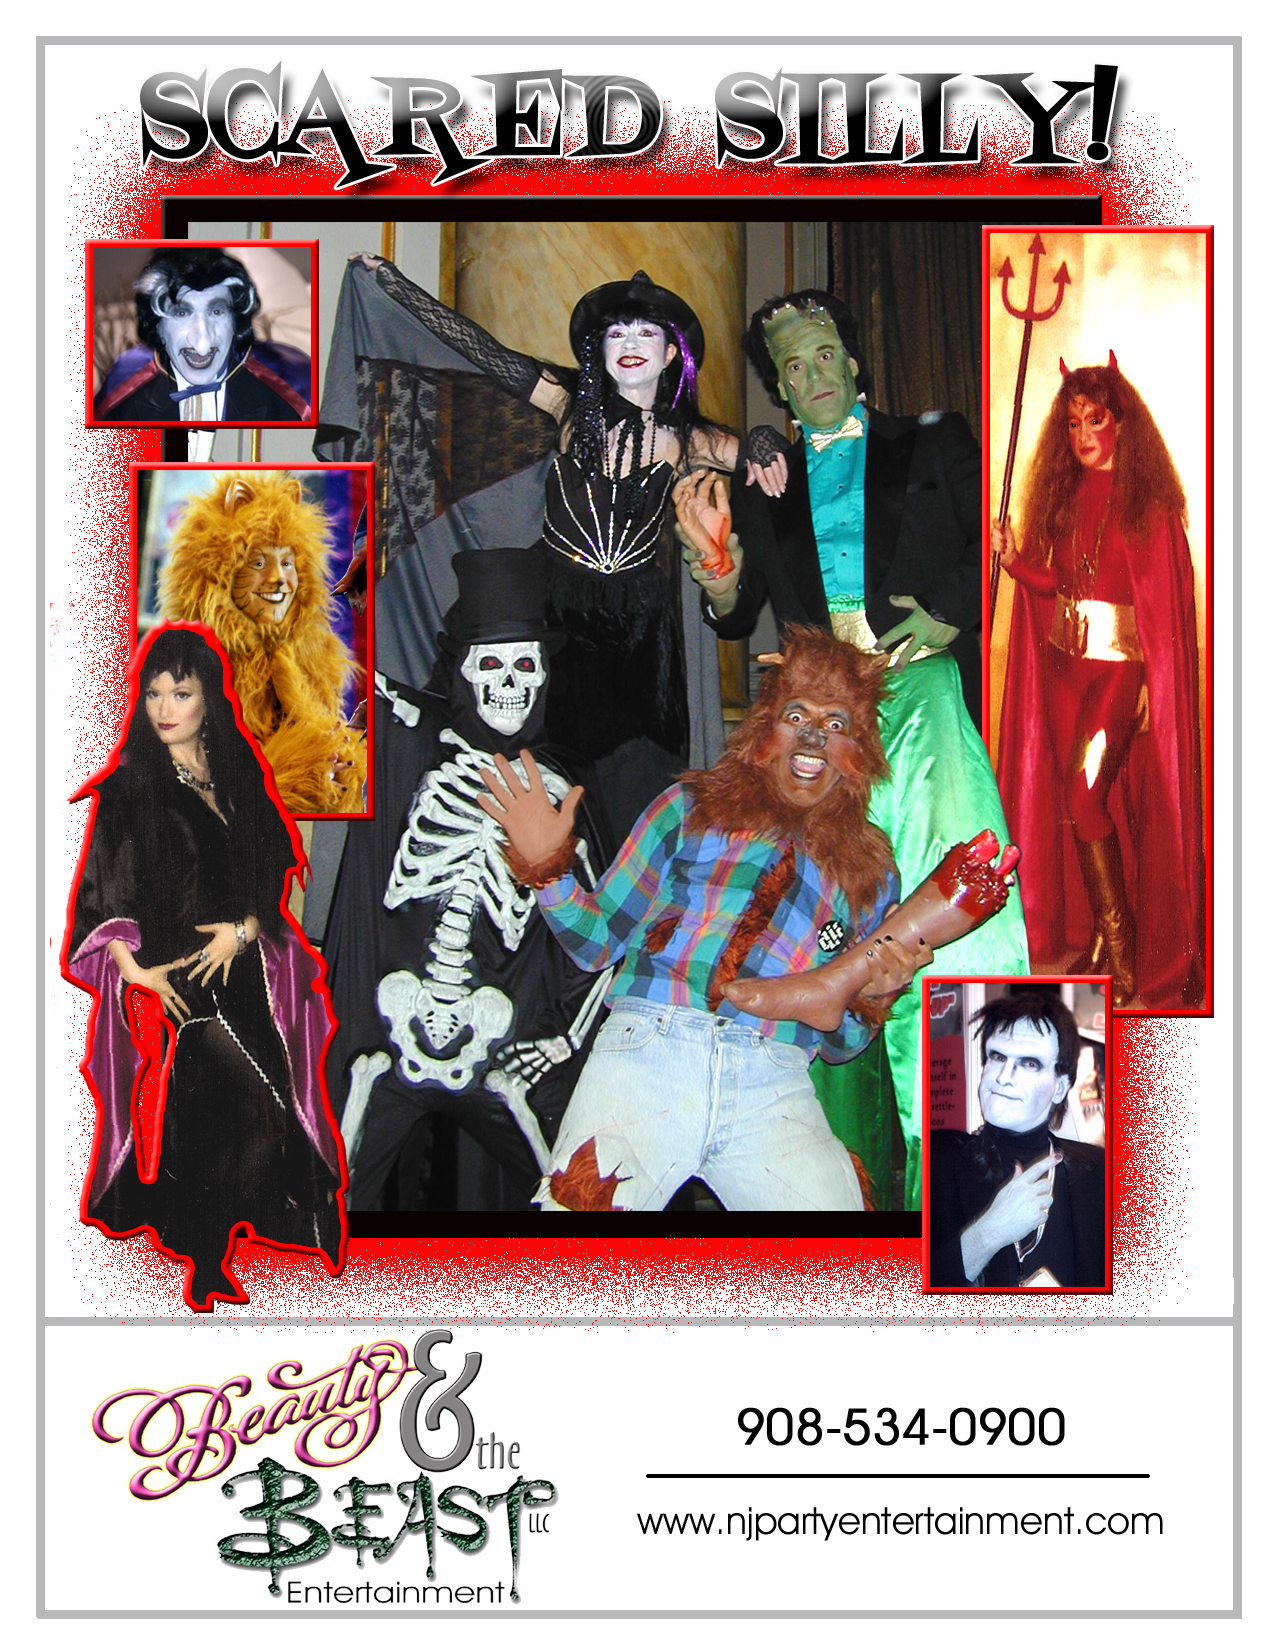 NJ Halloween Entertainment, the best Halloween party entertainers for kids, teens and adults, general audience shows, scary magic shows, costumed characters, comedy variety entertainers for halloween parties in New Jersey, Frankenstein character entertainer, Count Dracula Schnazolla entertainer, Phantom of the Opera somger actor, Pirate Magician, Star Trek Mr Spock character, Wolfman costumed character, Halloween Magicians NJ, Wolf Man, and much more